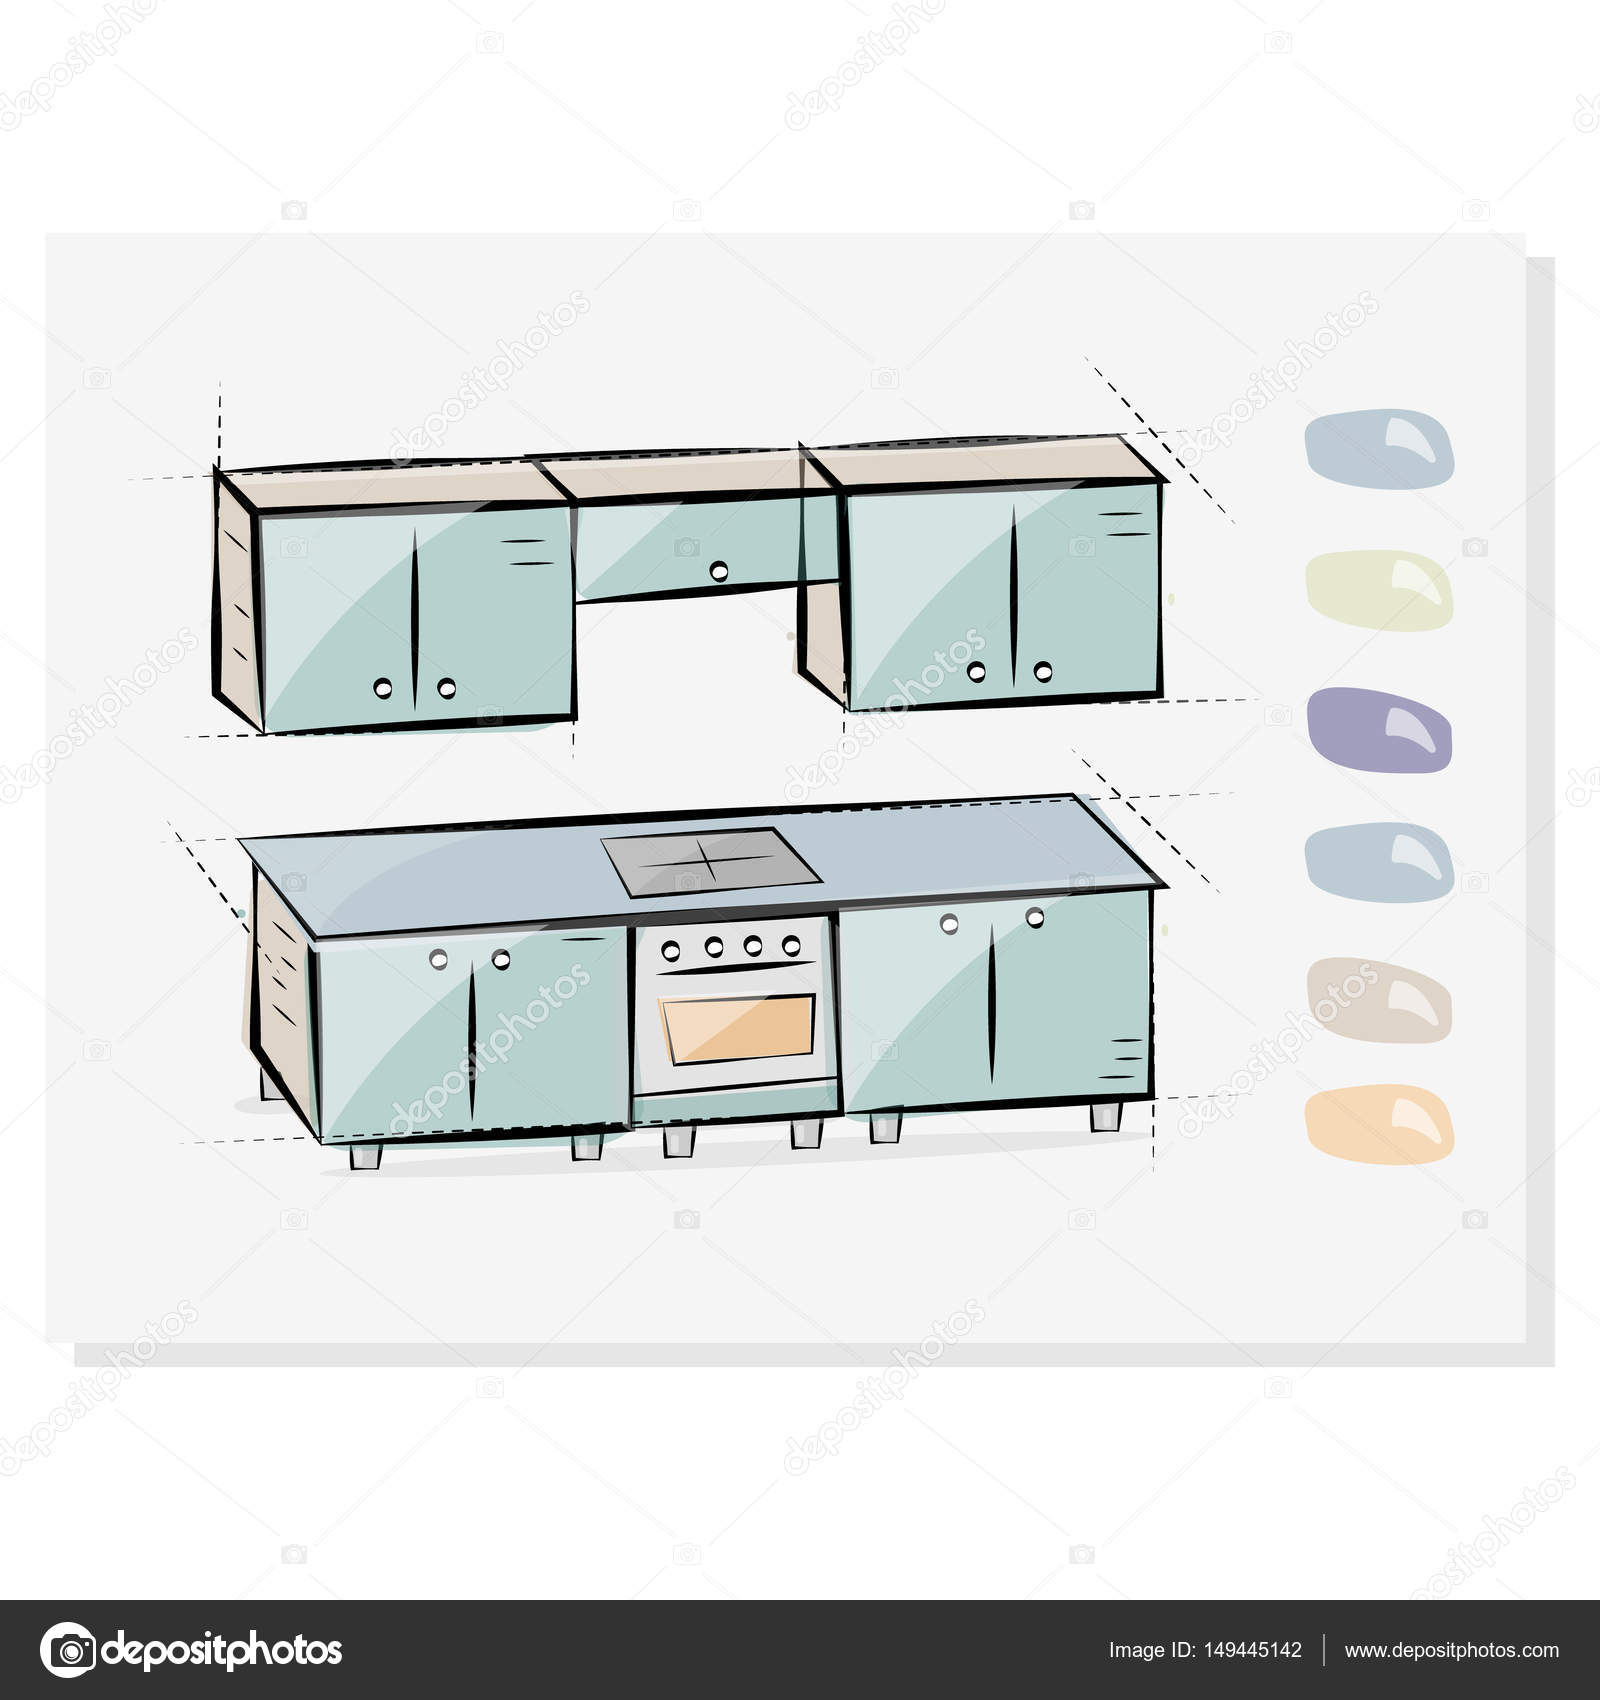 Kitchen interior drawing, vector illustration. Button choosing ...